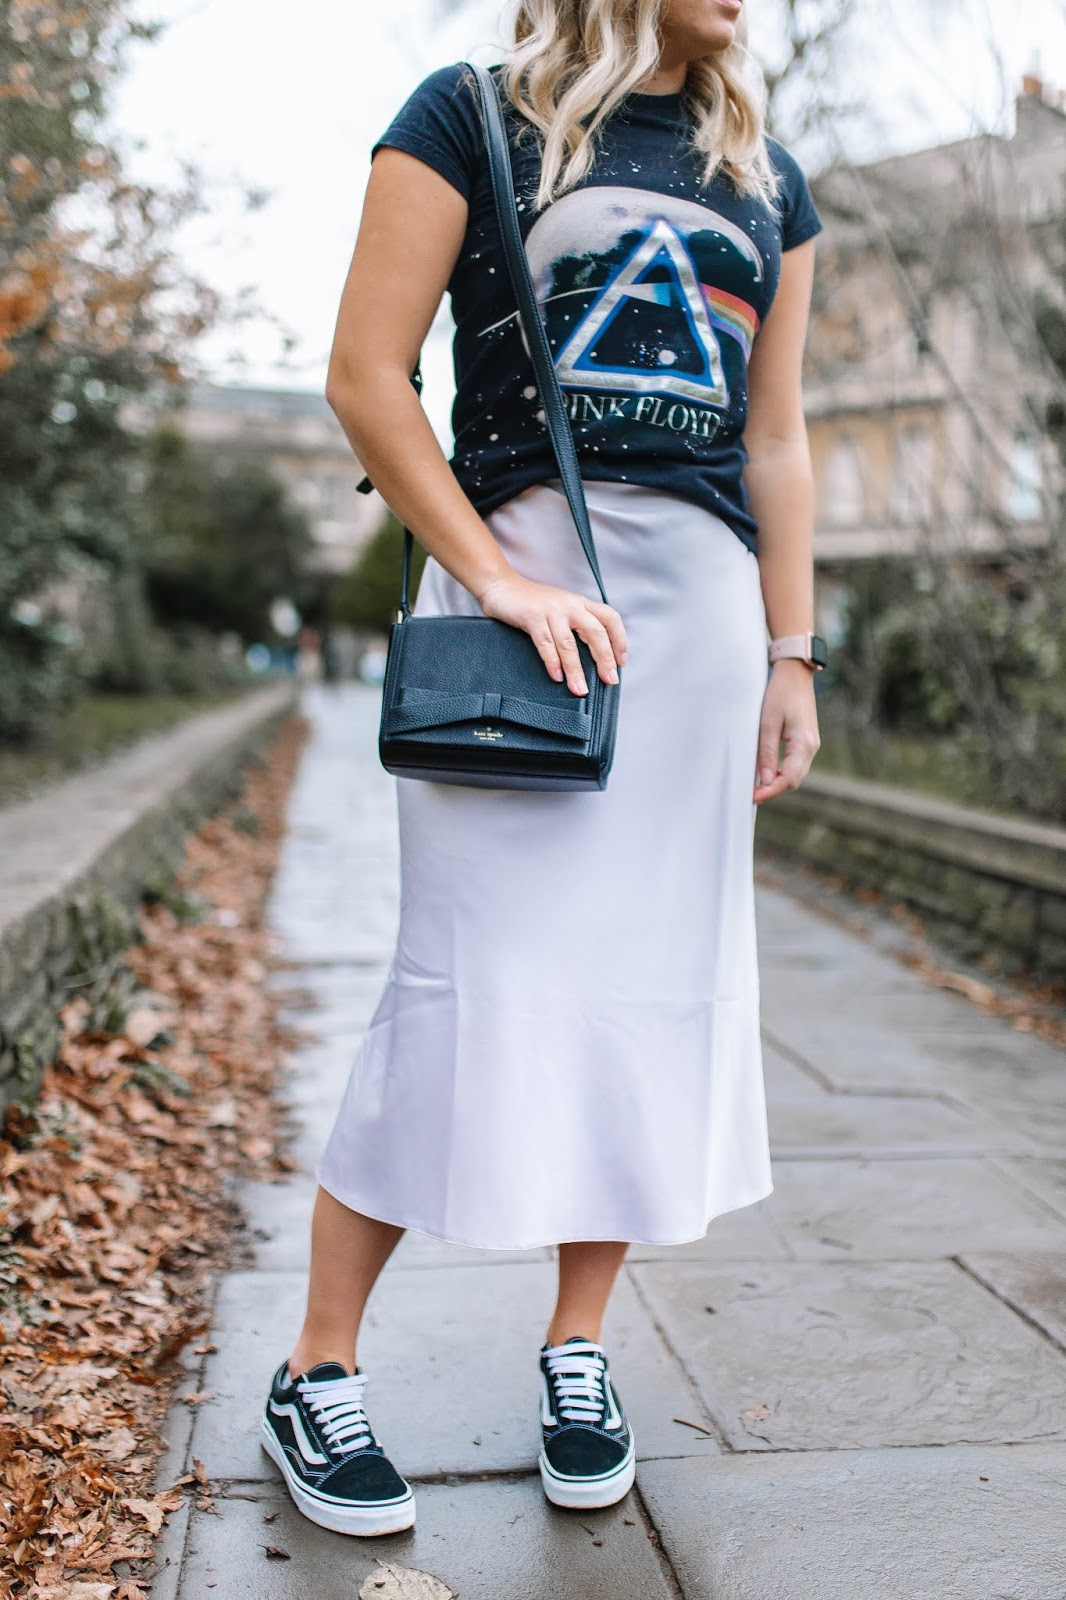 Fashion | The Skirt Everyone Is Wearing - Bias Cut Midi Skirt | Rachel Emily Blog